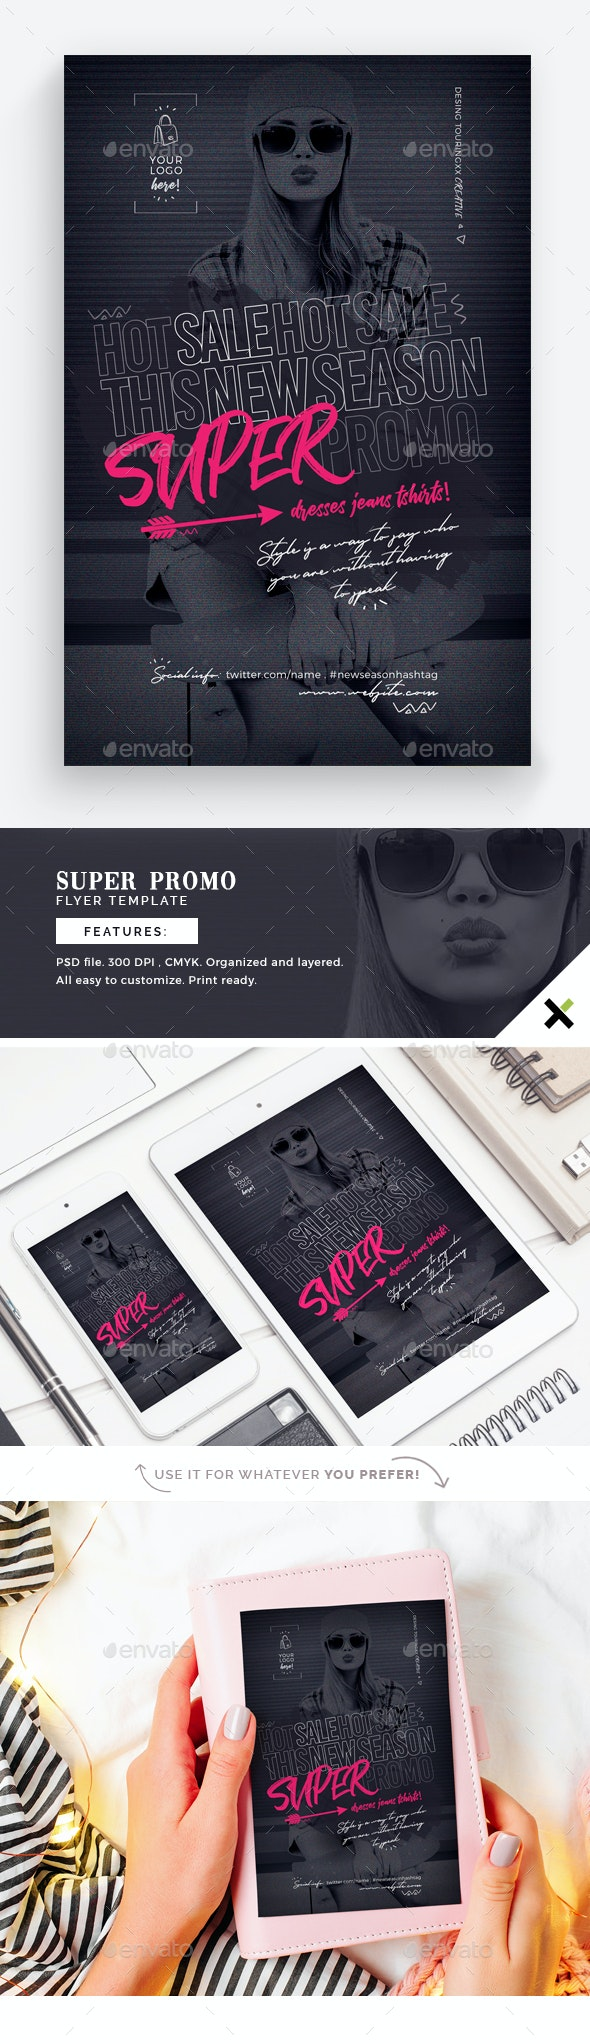 Super Promo Flyer Template - Flyers Print Templates